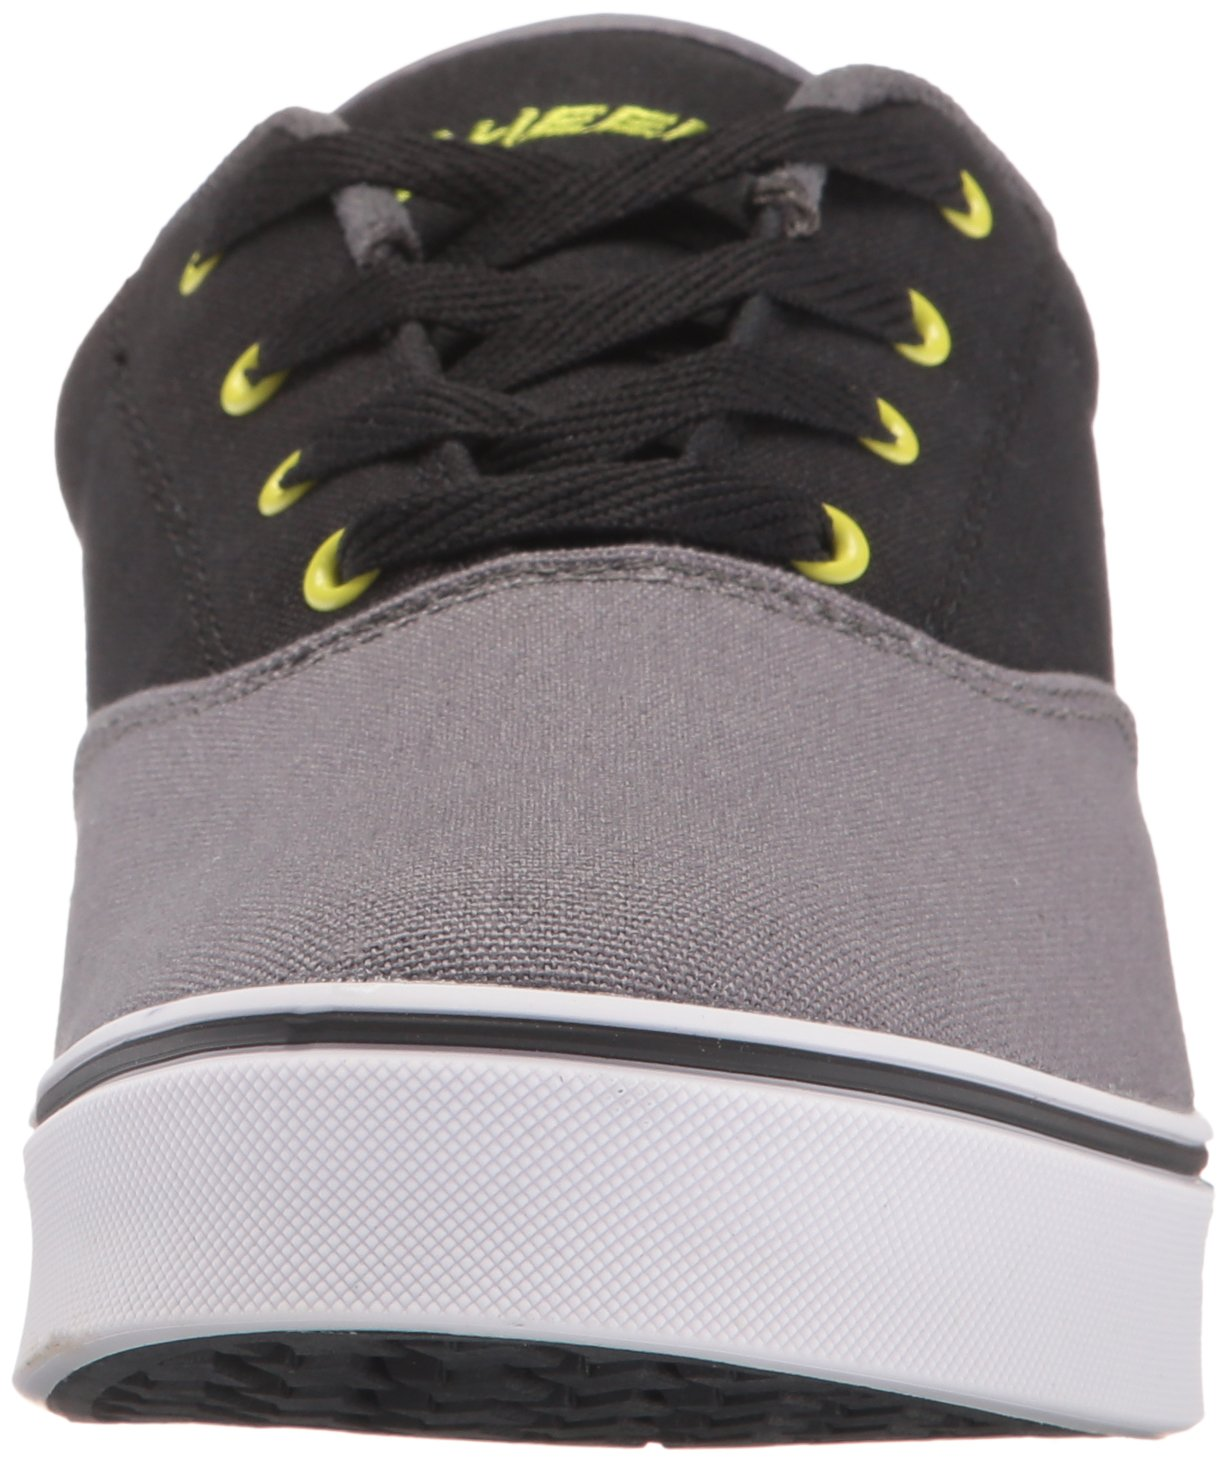 Heelys Men's Launch Fashion Sneaker Charcoal/Black/Lime 10 M US by Heelys (Image #4)